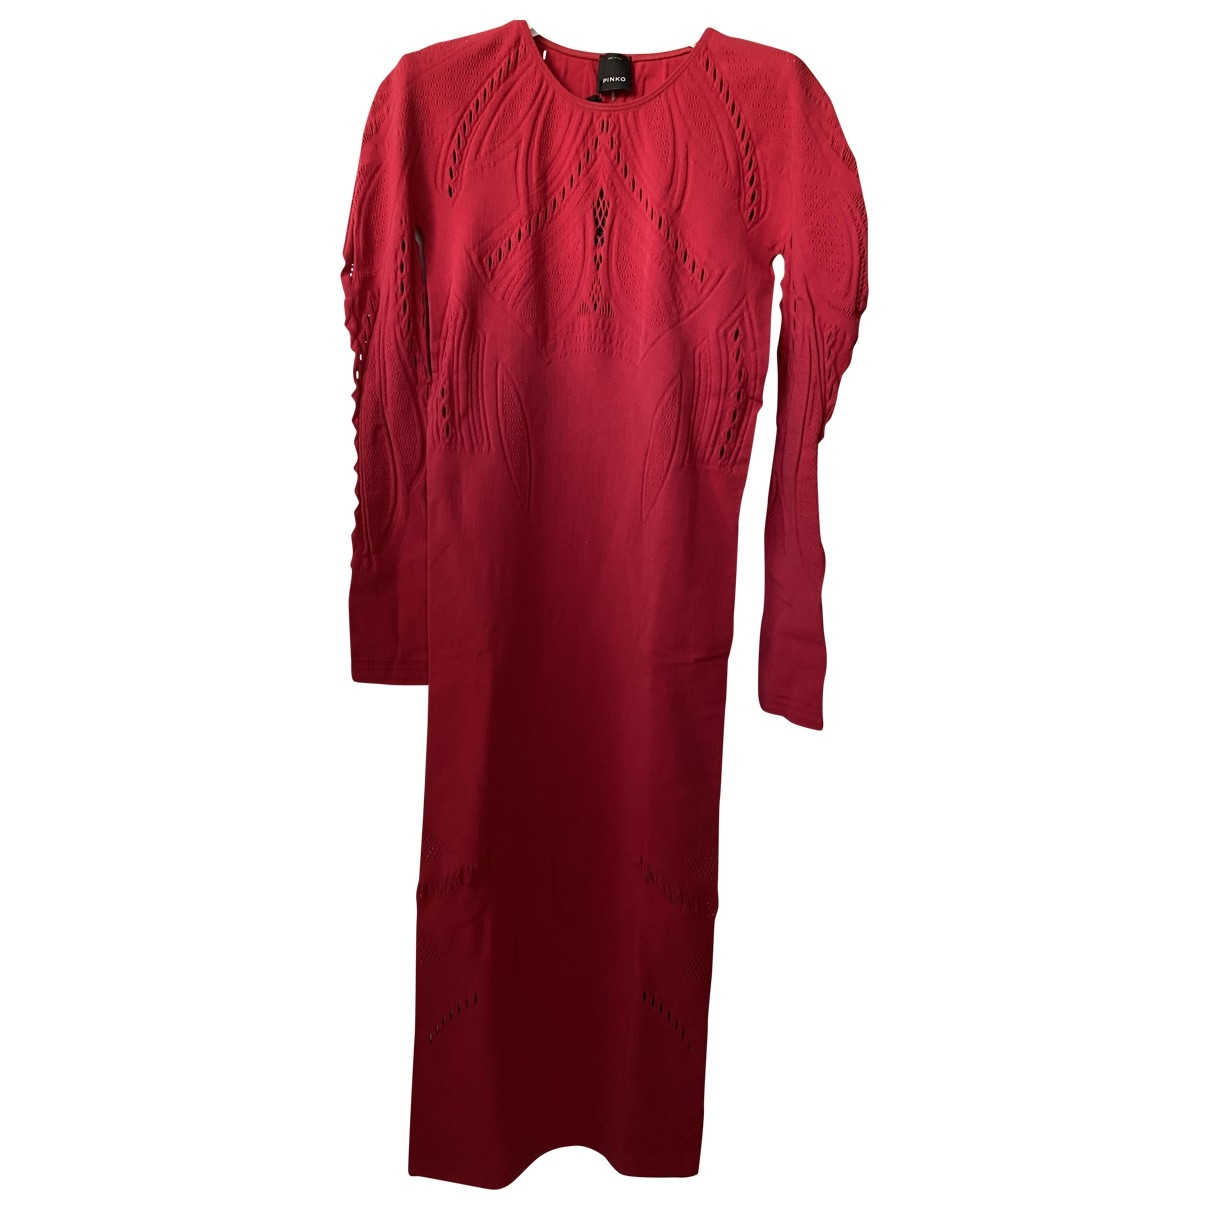 Pinko \N Red Cotton - elasthane dress for Women S International